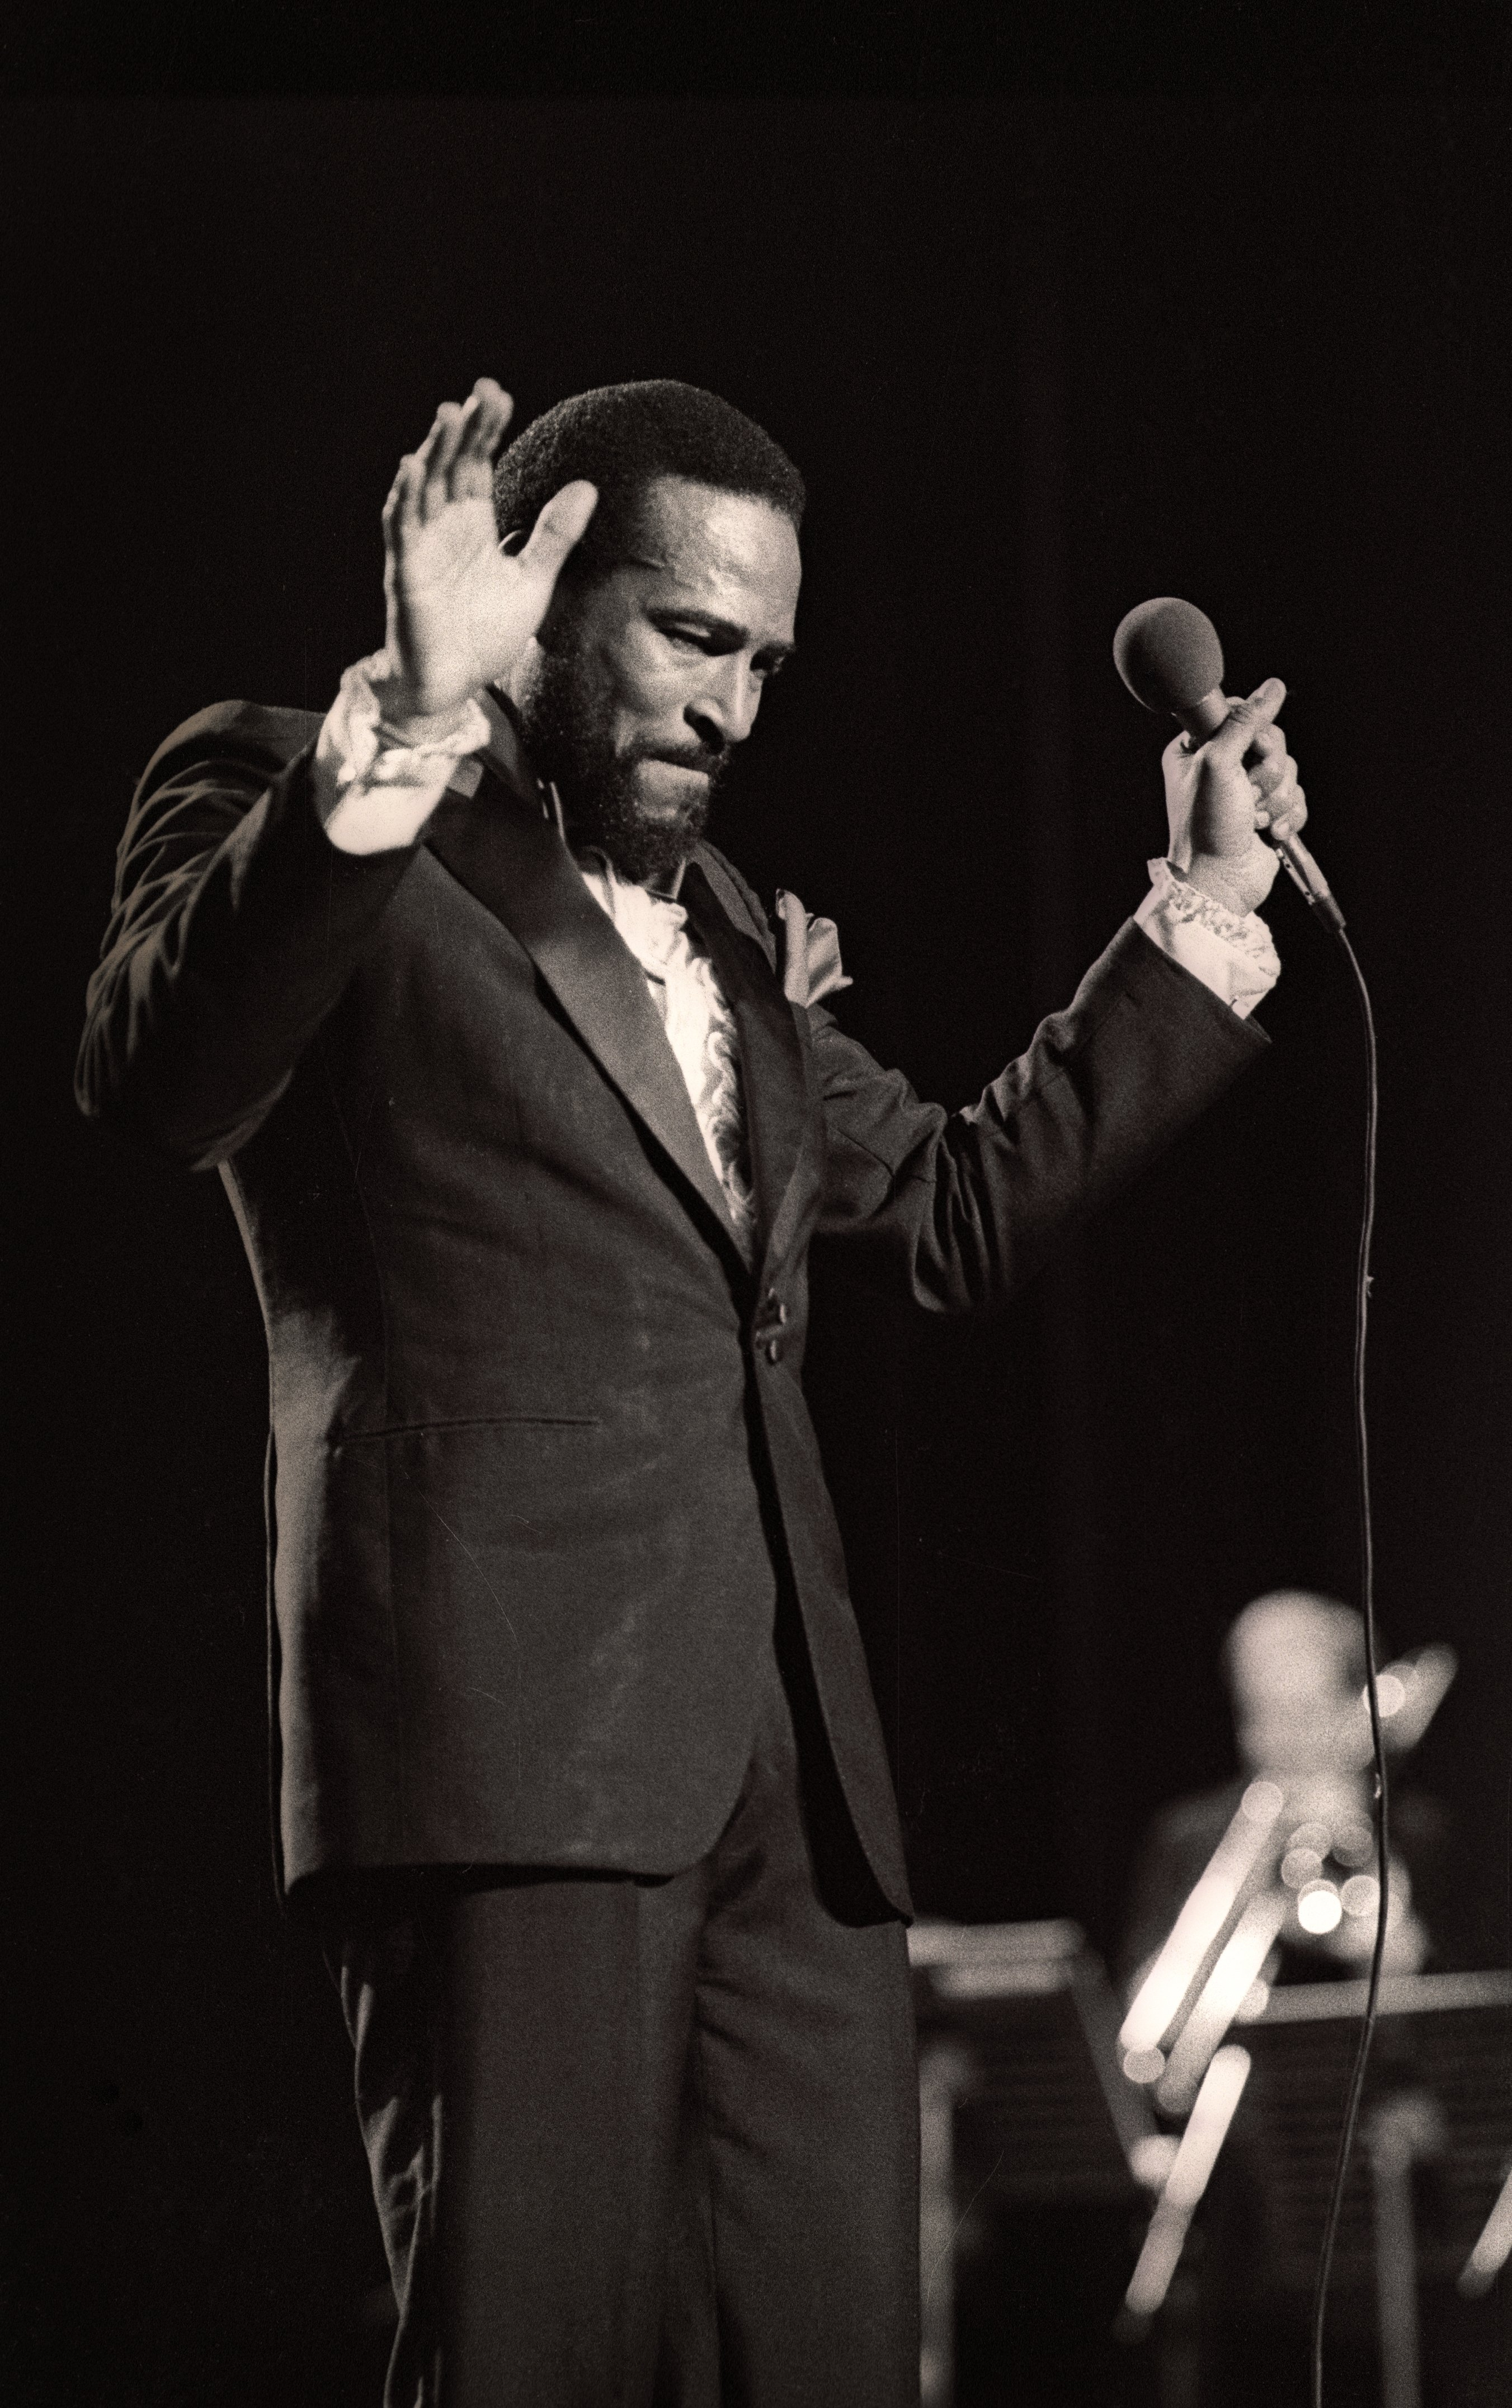 Marvin Gaye performing at Casino, Oostende, Belgium on April 7, 1981. | Source: Getty Images